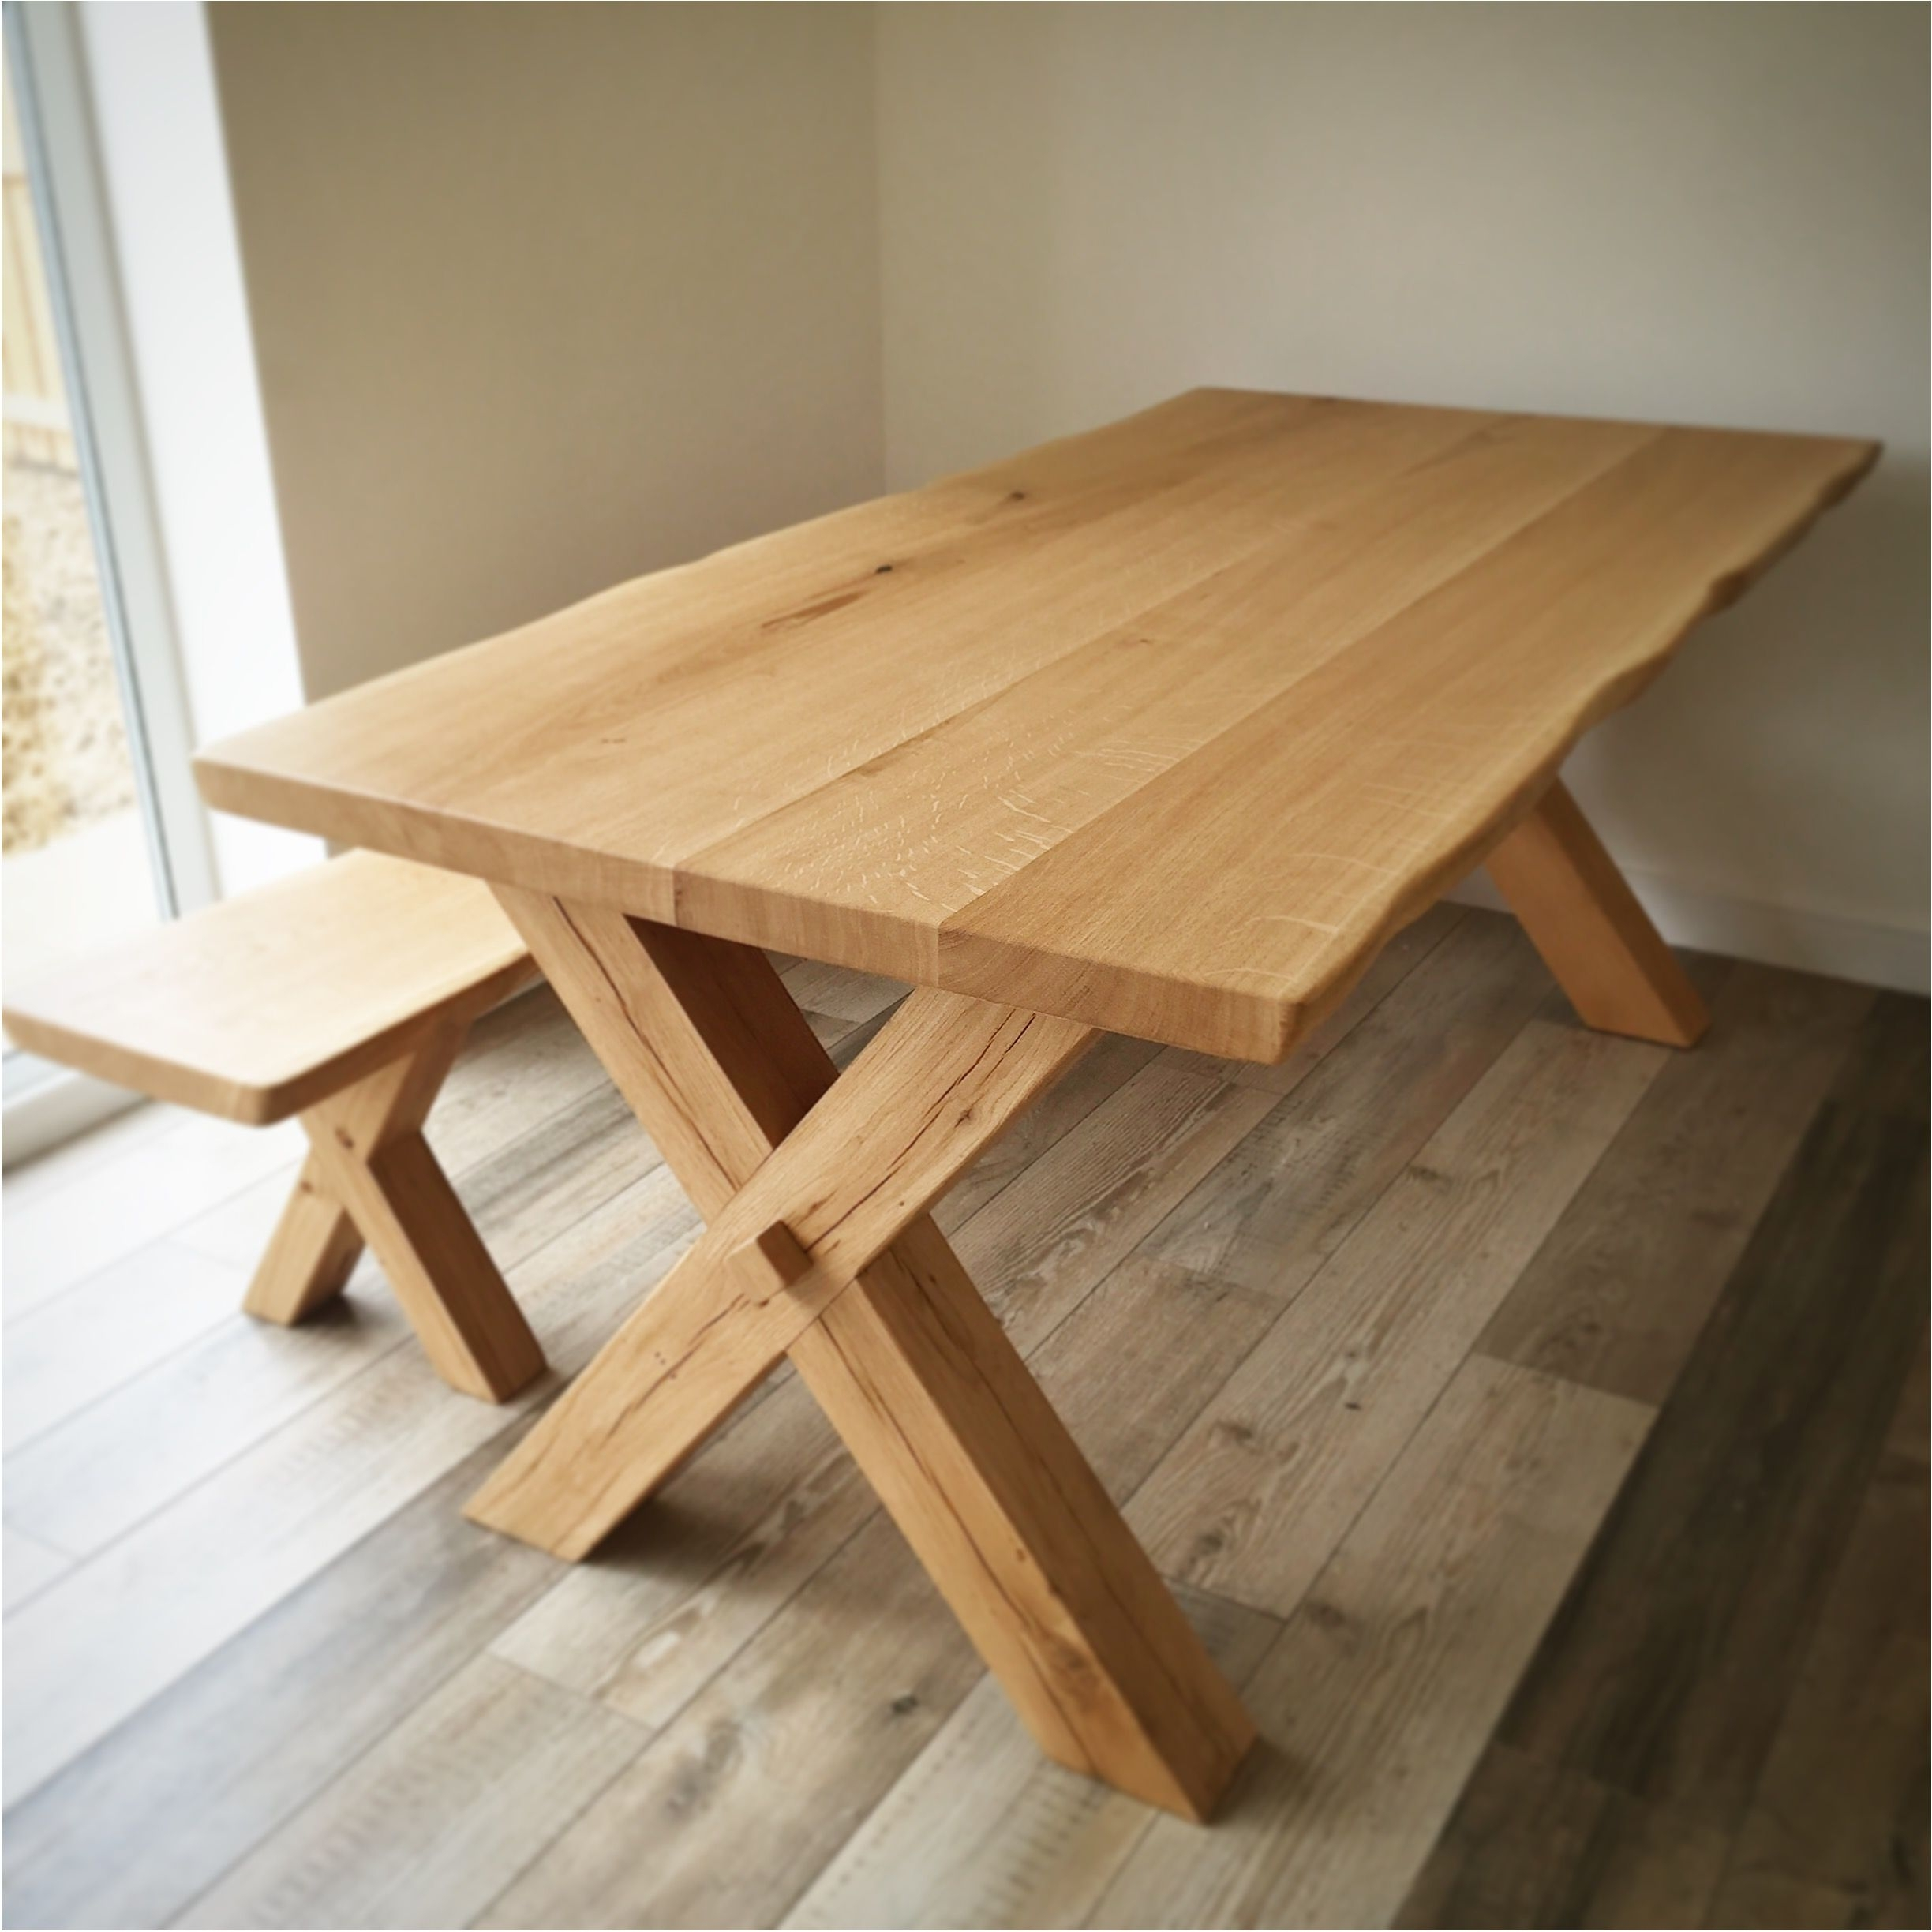 Preferred Excellently Solid Oak Dining Table Cross Leg Design Handmade In The Within Chunky Solid Oak Dining Tables And 6 Chairs (View 22 of 25)